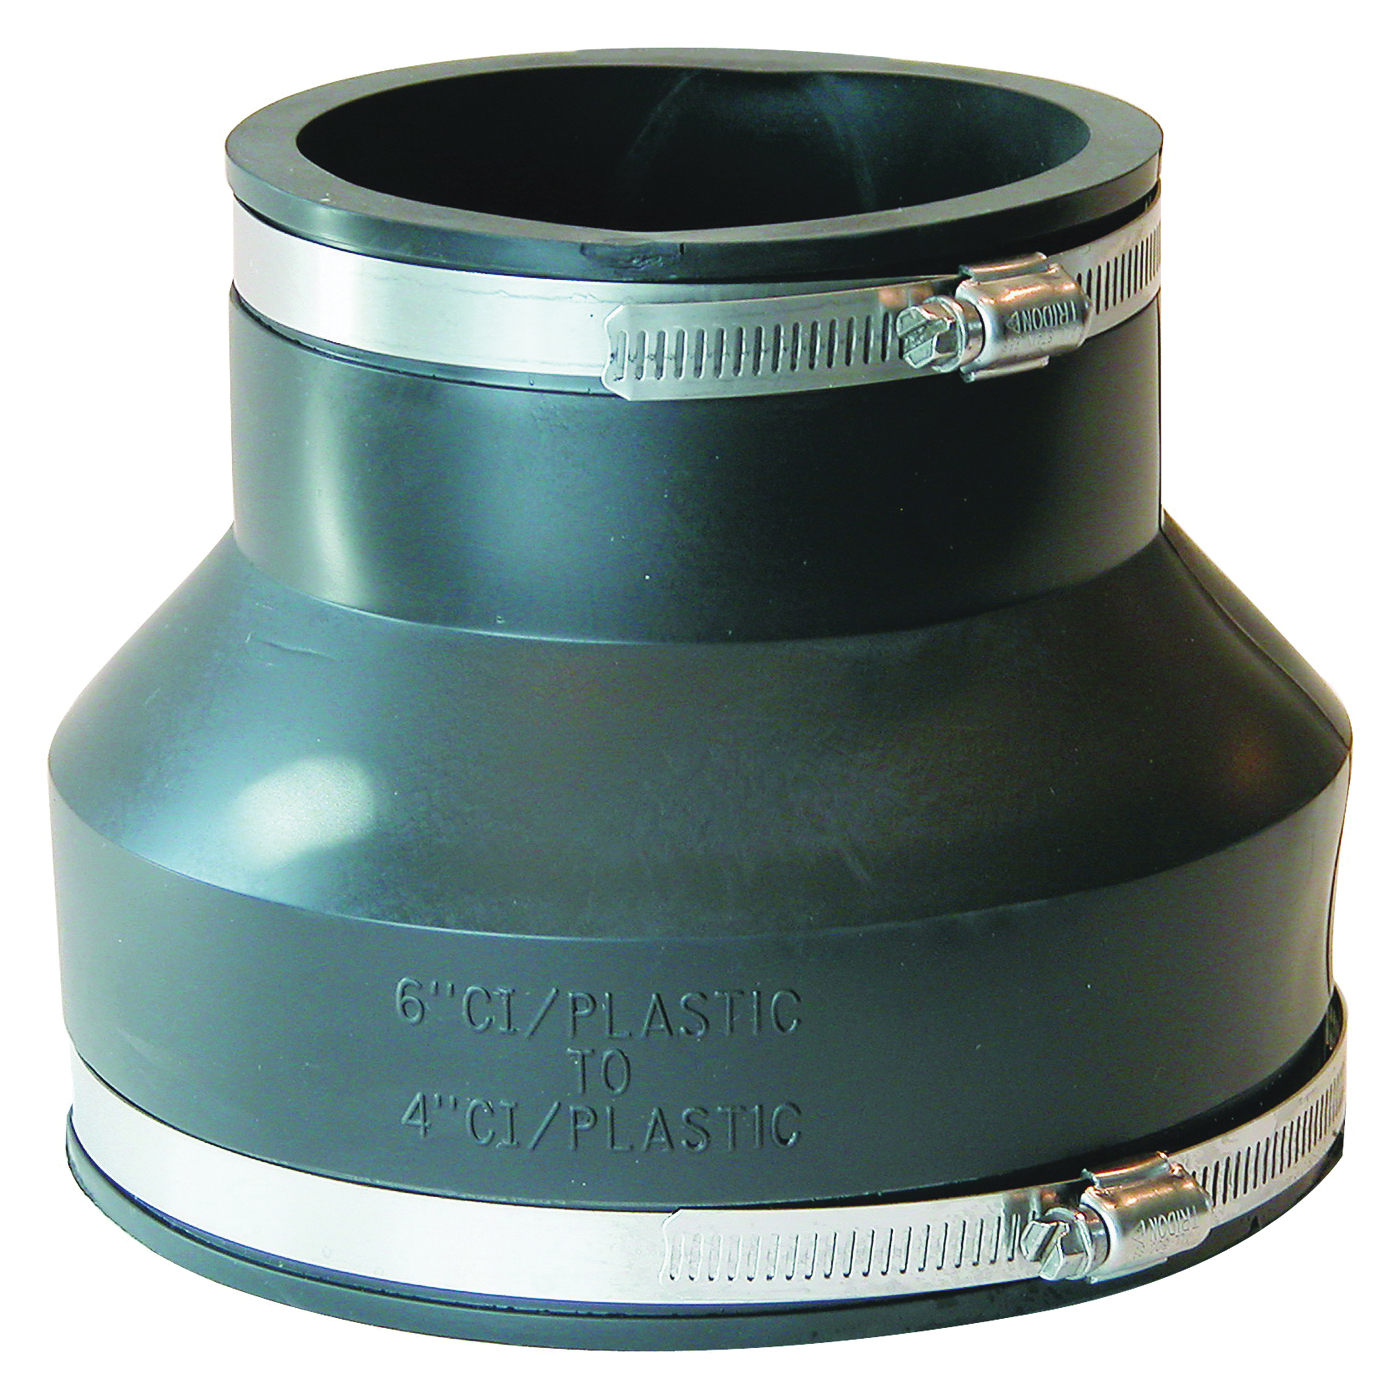 Picture of FERNCO P1056-64 Flexible Pipe Coupling, 6 x 4 in, PVC, Black, 4.3 psi Pressure